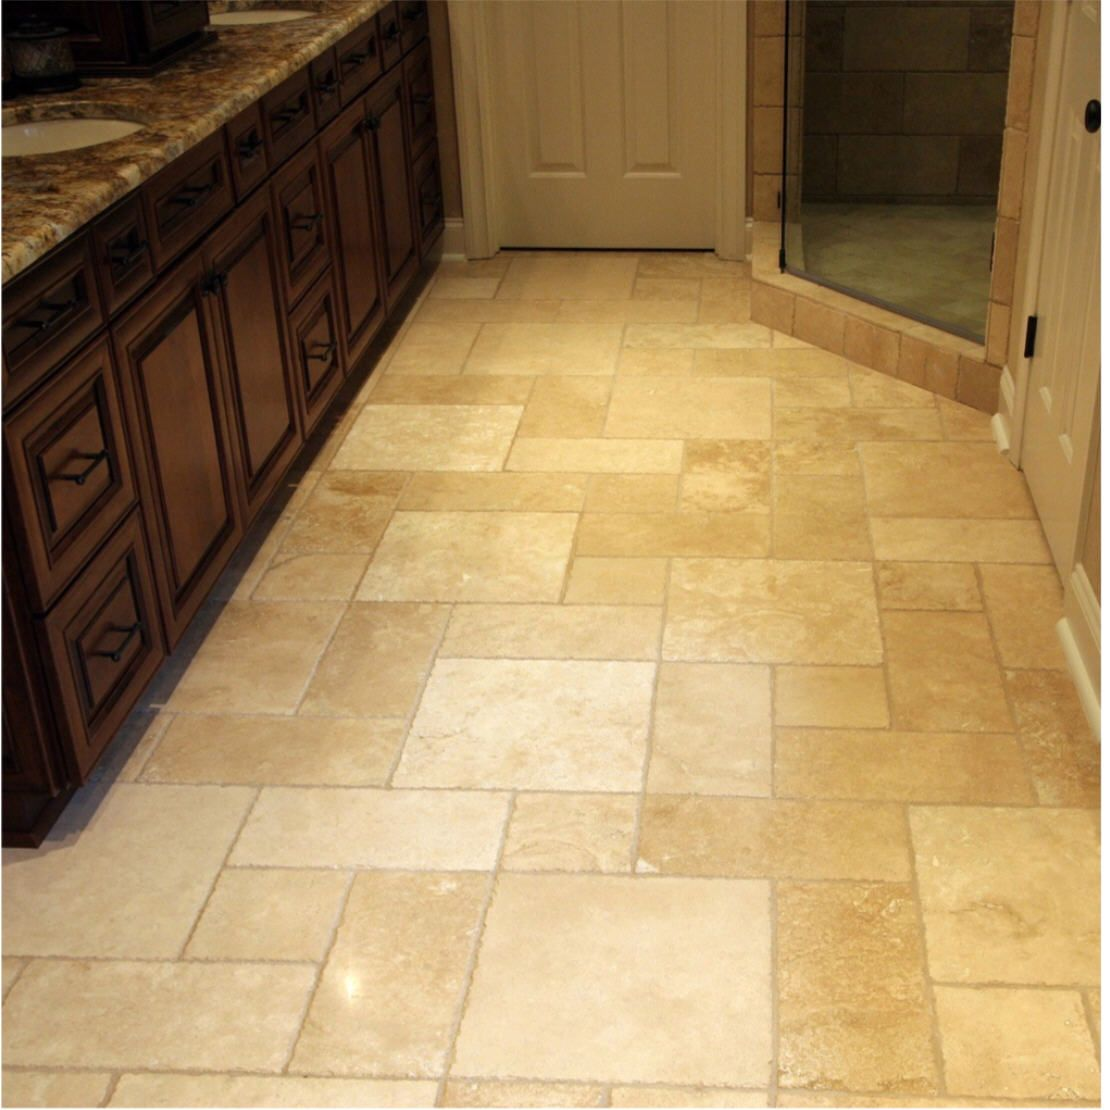 Home Floor And Kitchens Travertine Tile Floor Pattern Called Hopscotch Affordable Design